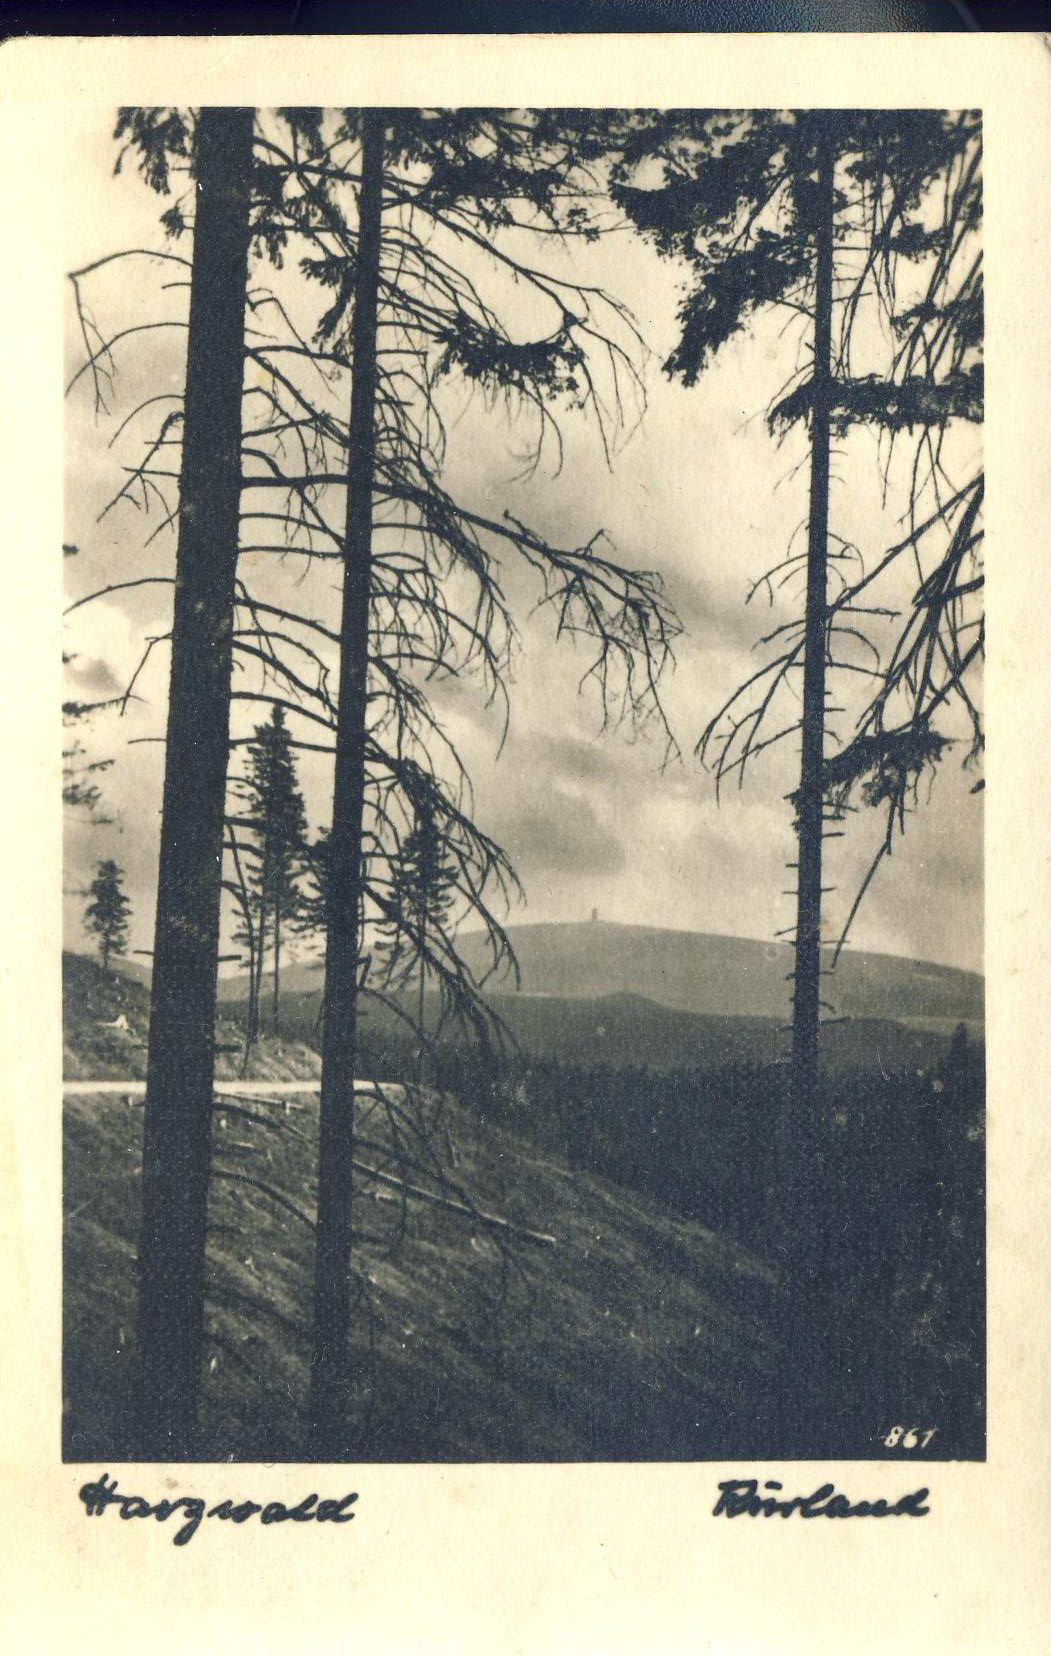 Germany 6 Kms inside the Russian Zone Bergbahnen Hergiswald Old Postcard refP8 Pre-owned used condition.